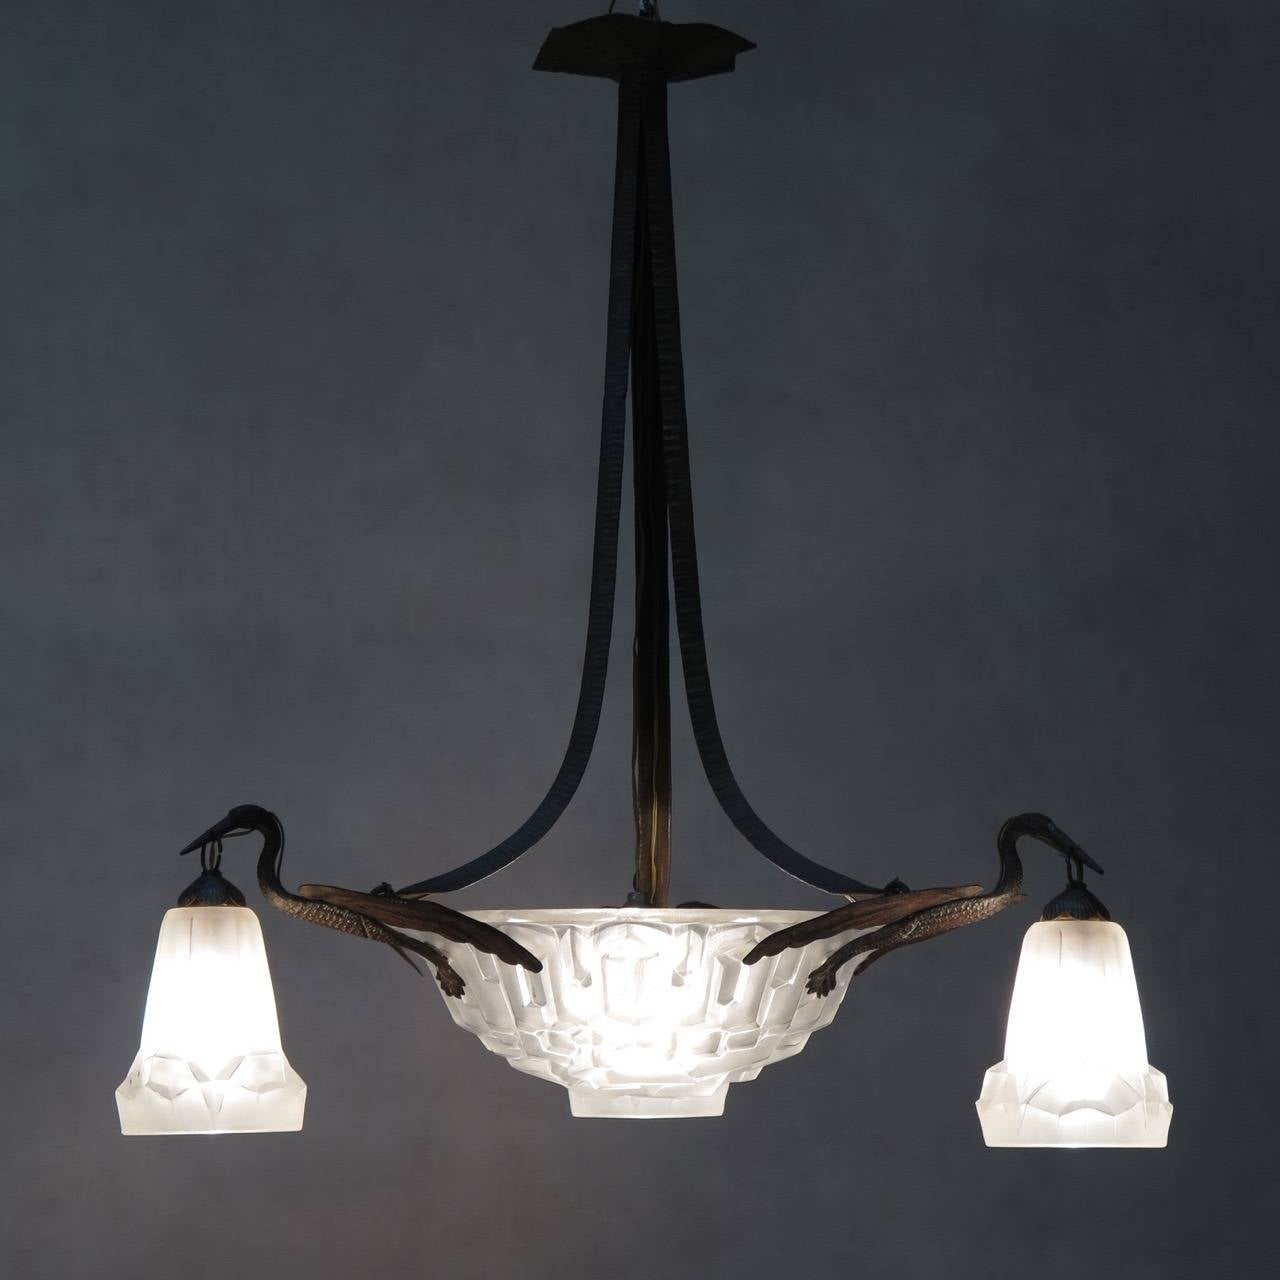 Elegant Art Deco chandelier with a hammered wrought-iron structure and heavy frosted glass shades. Three storks support the large centre shade, and each carries a smaller one in its beak. 